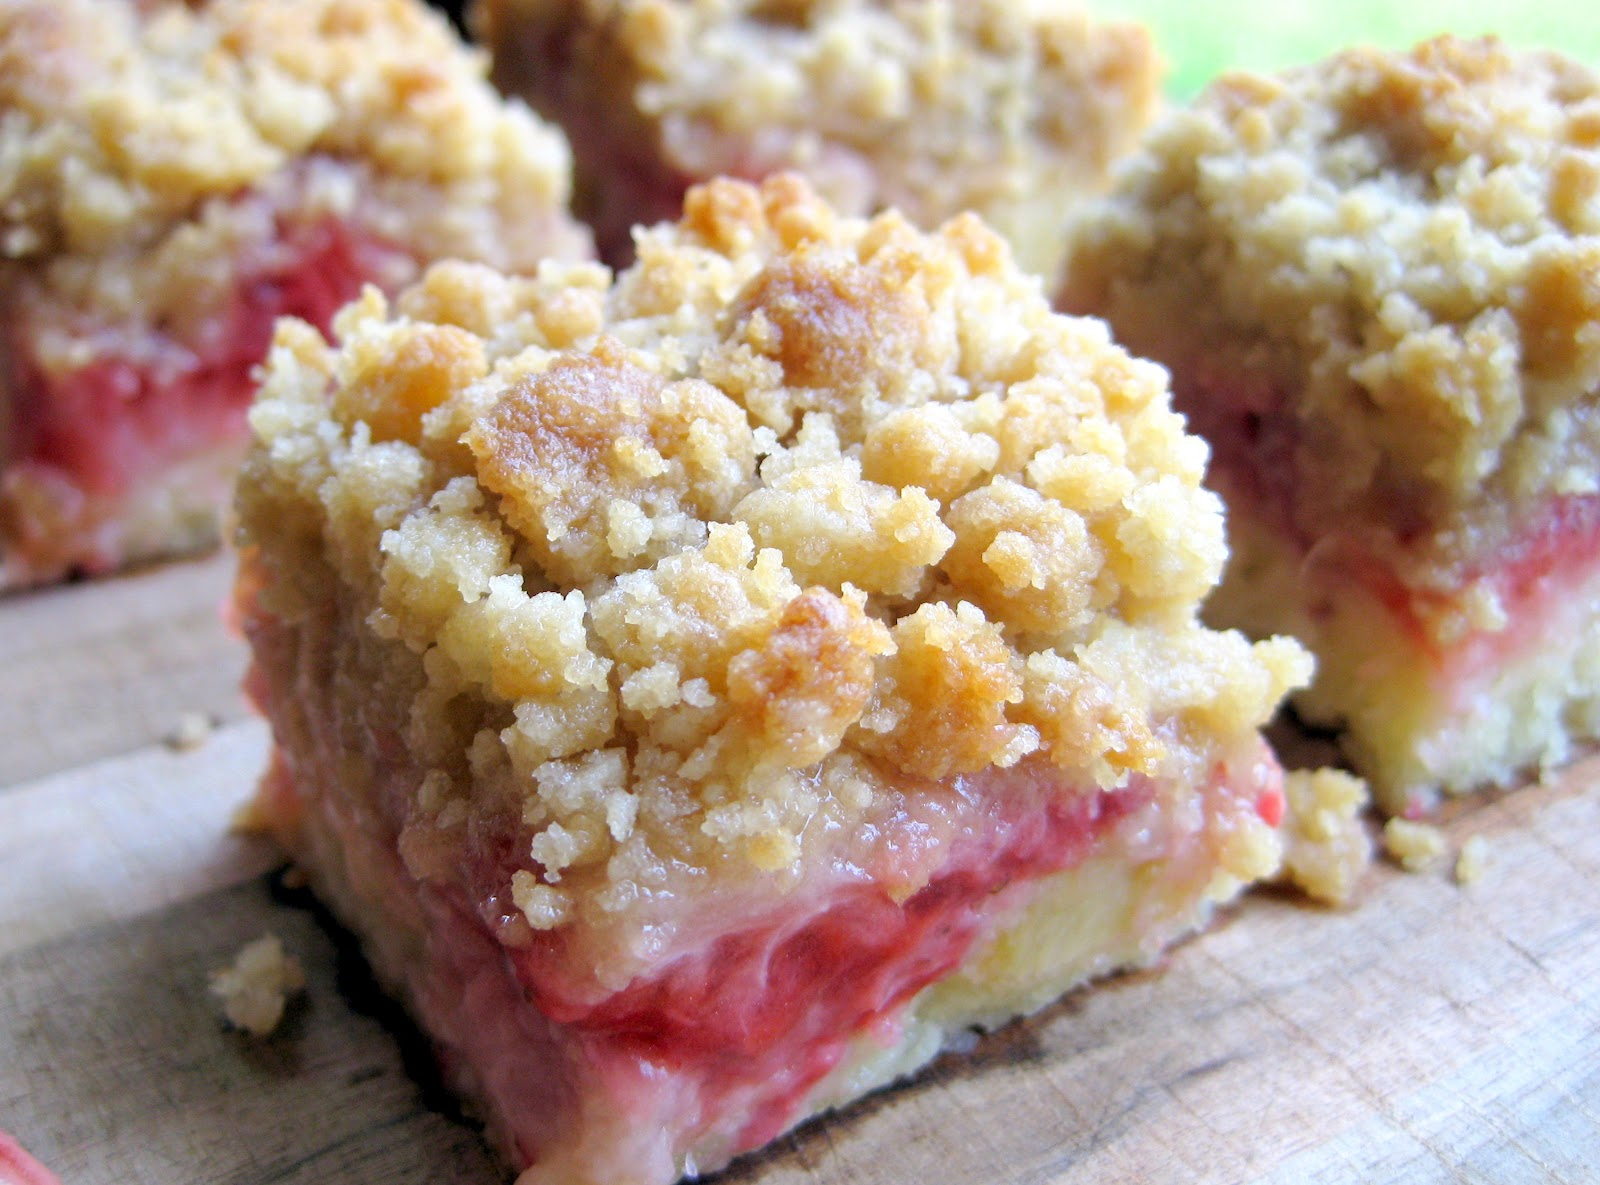 ... tastes much more like a cake delicious strawberry rhubarb cake that is